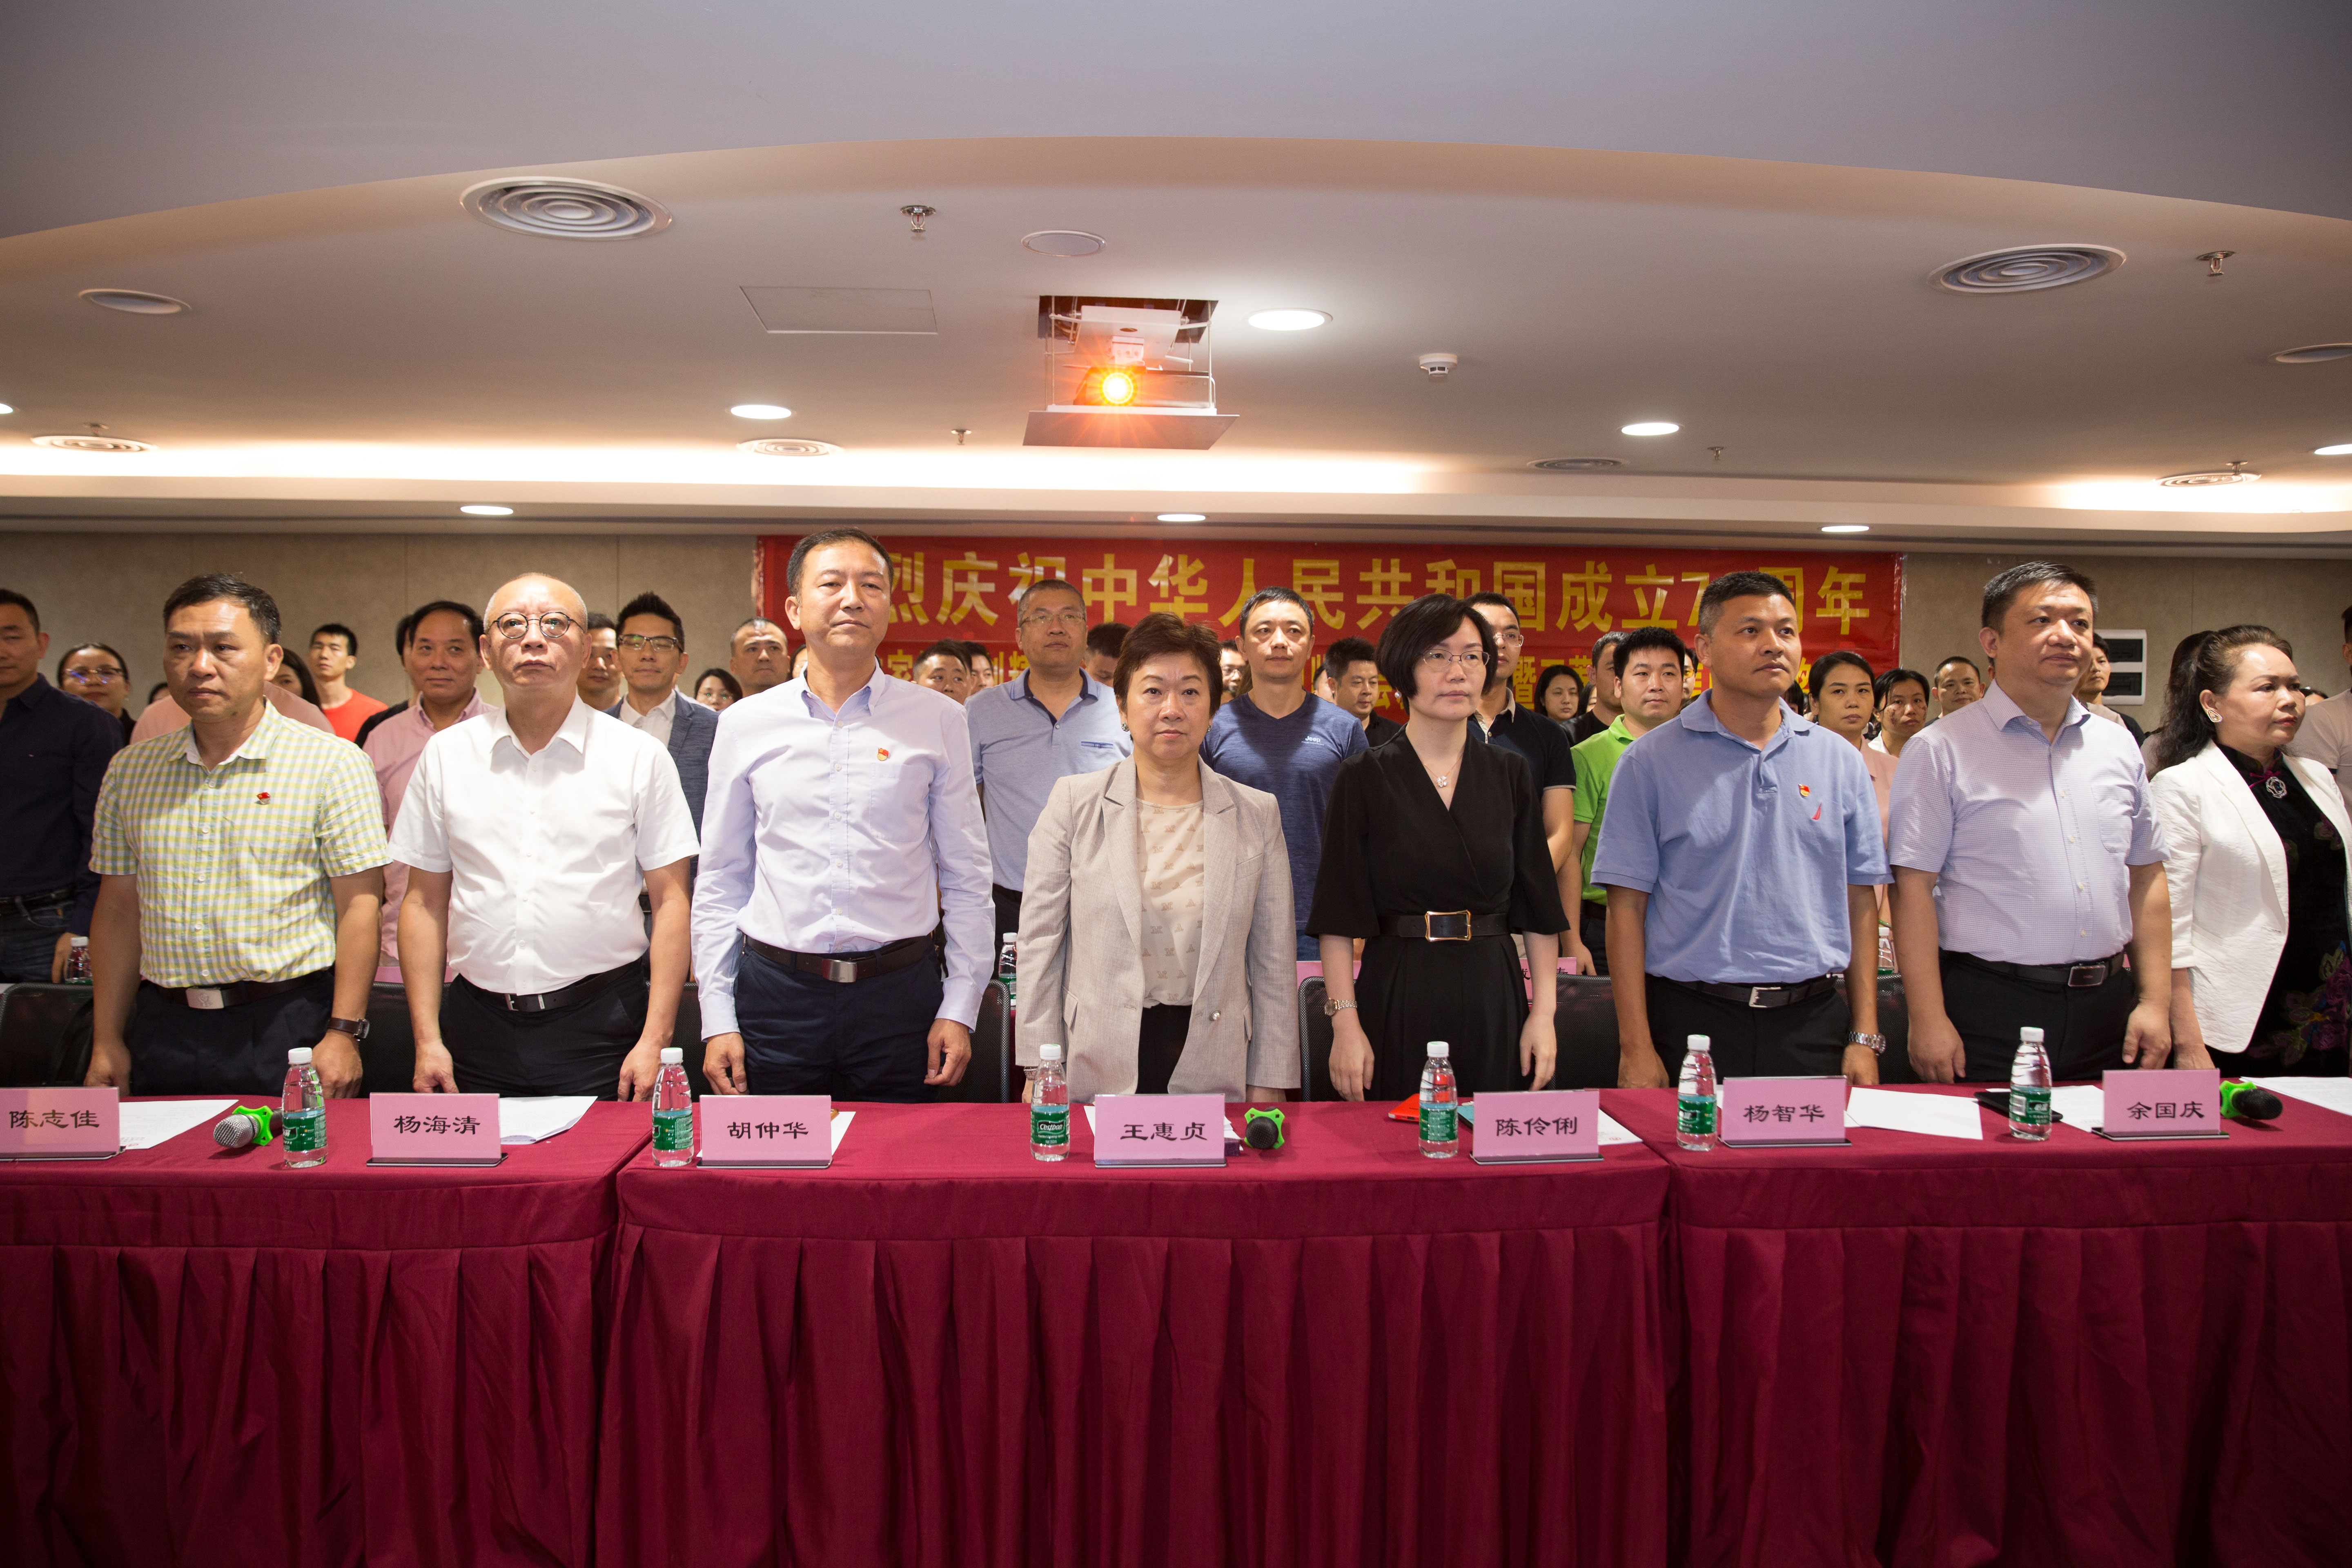 Celebrating the establishment of the 70th anniversary municipal fair, the first chamber of Commerce, the first inaugural ceremony of the board of supervisors and the award ceremony of the integrity merchants of Wan Ling Plaza